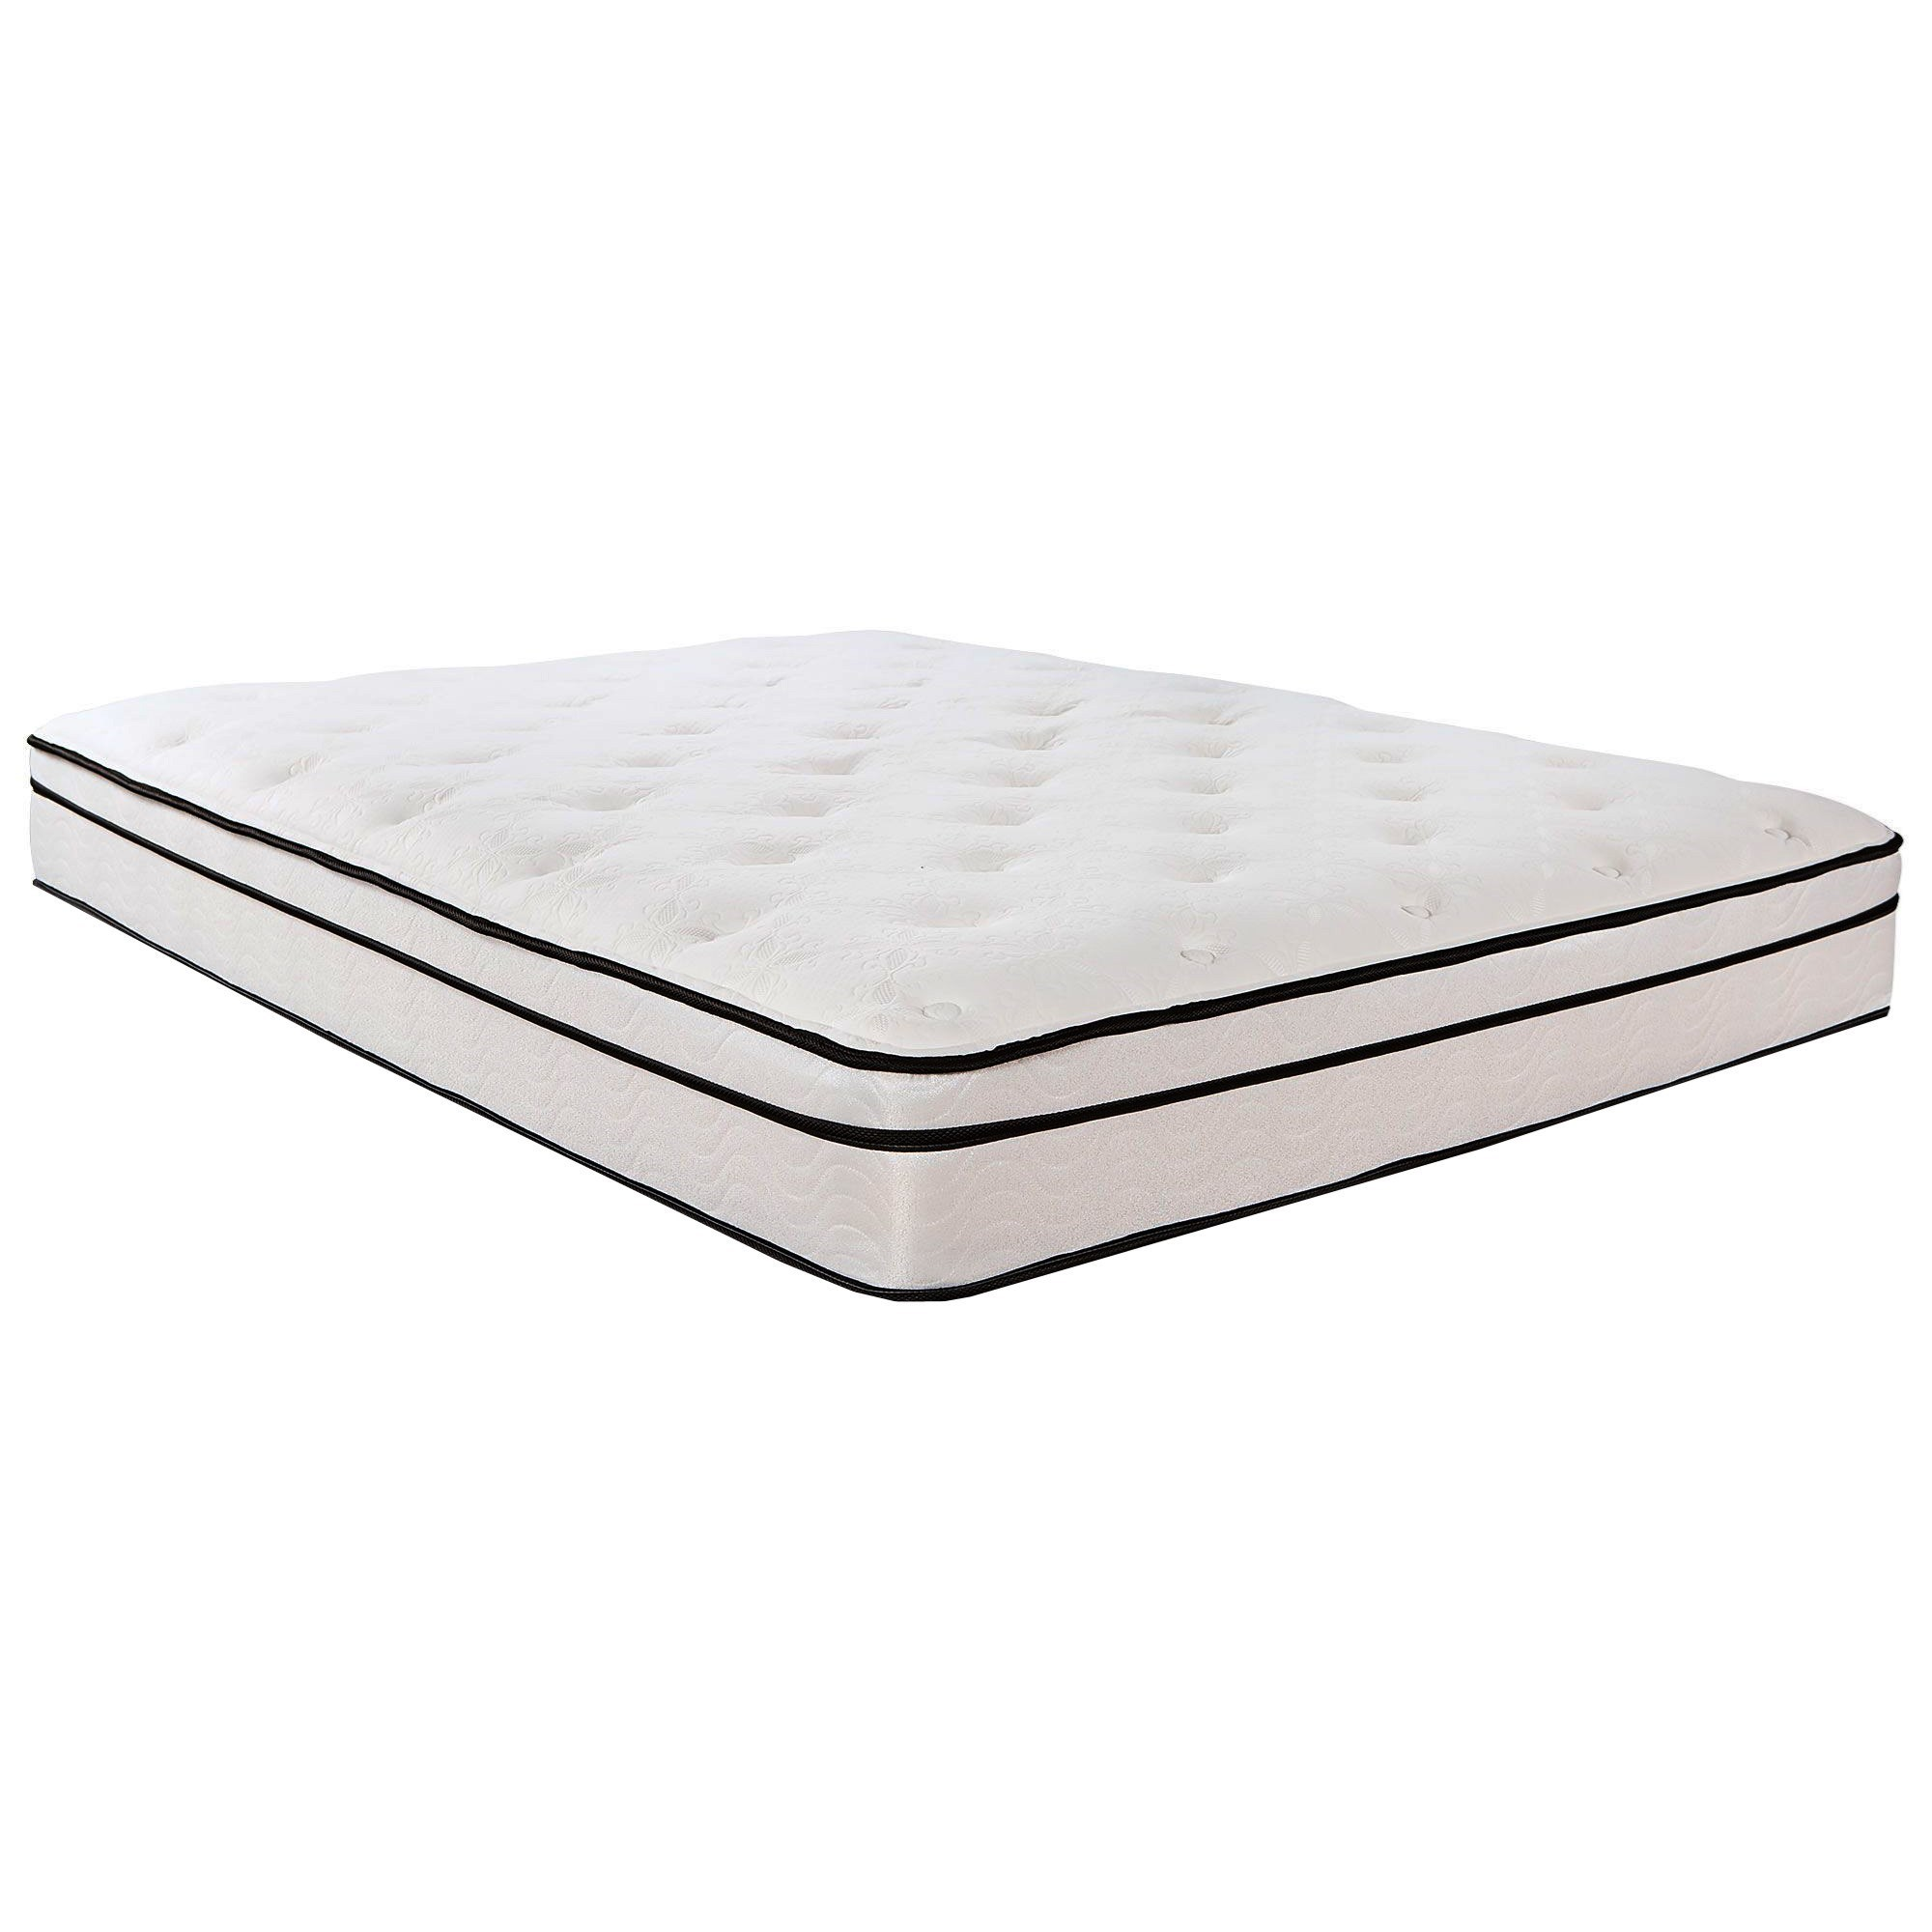 """6500 Euro Top Twin 12 1/4"""" Innerspring Mattress by Southerland Bedding Co. at Wilcox Furniture"""